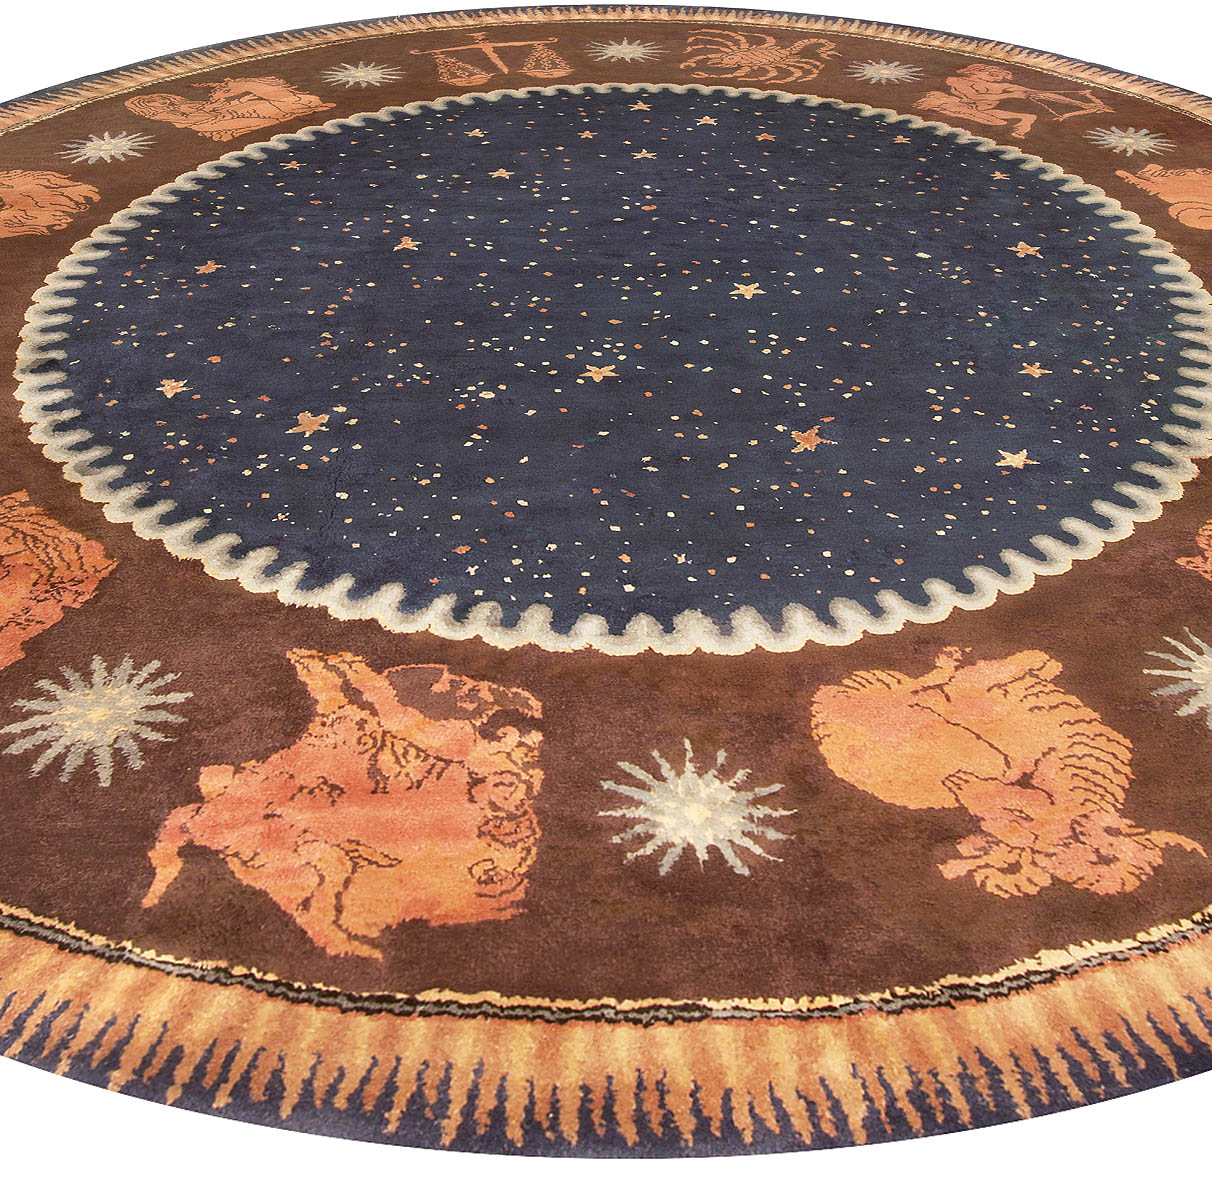 French Art Deco Circle Rug by Paul Follot BB6783